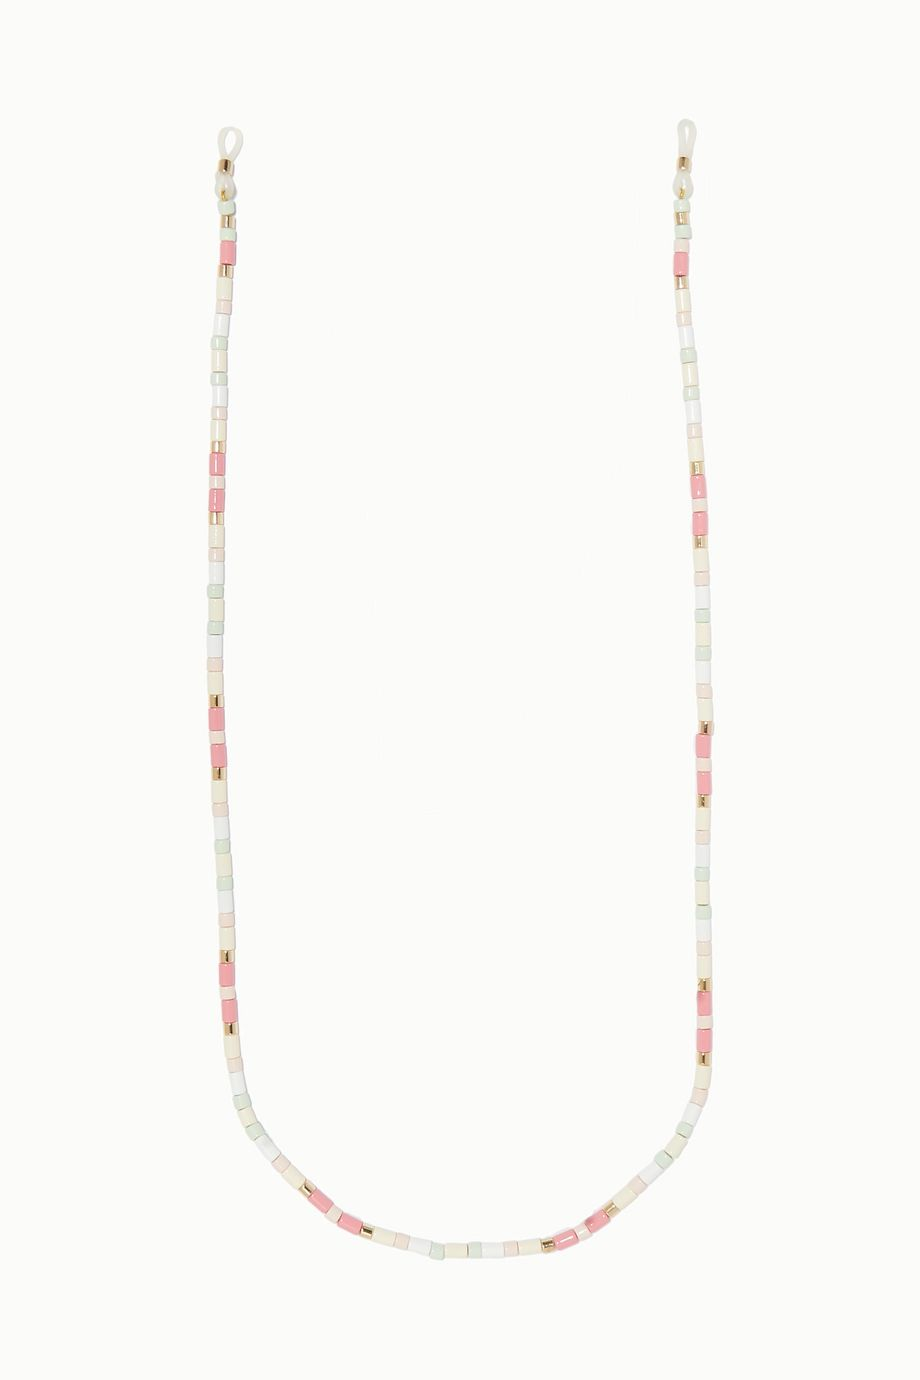 Roxanne Assoulin Bahamas enamel and gold-tone sunglasses chain